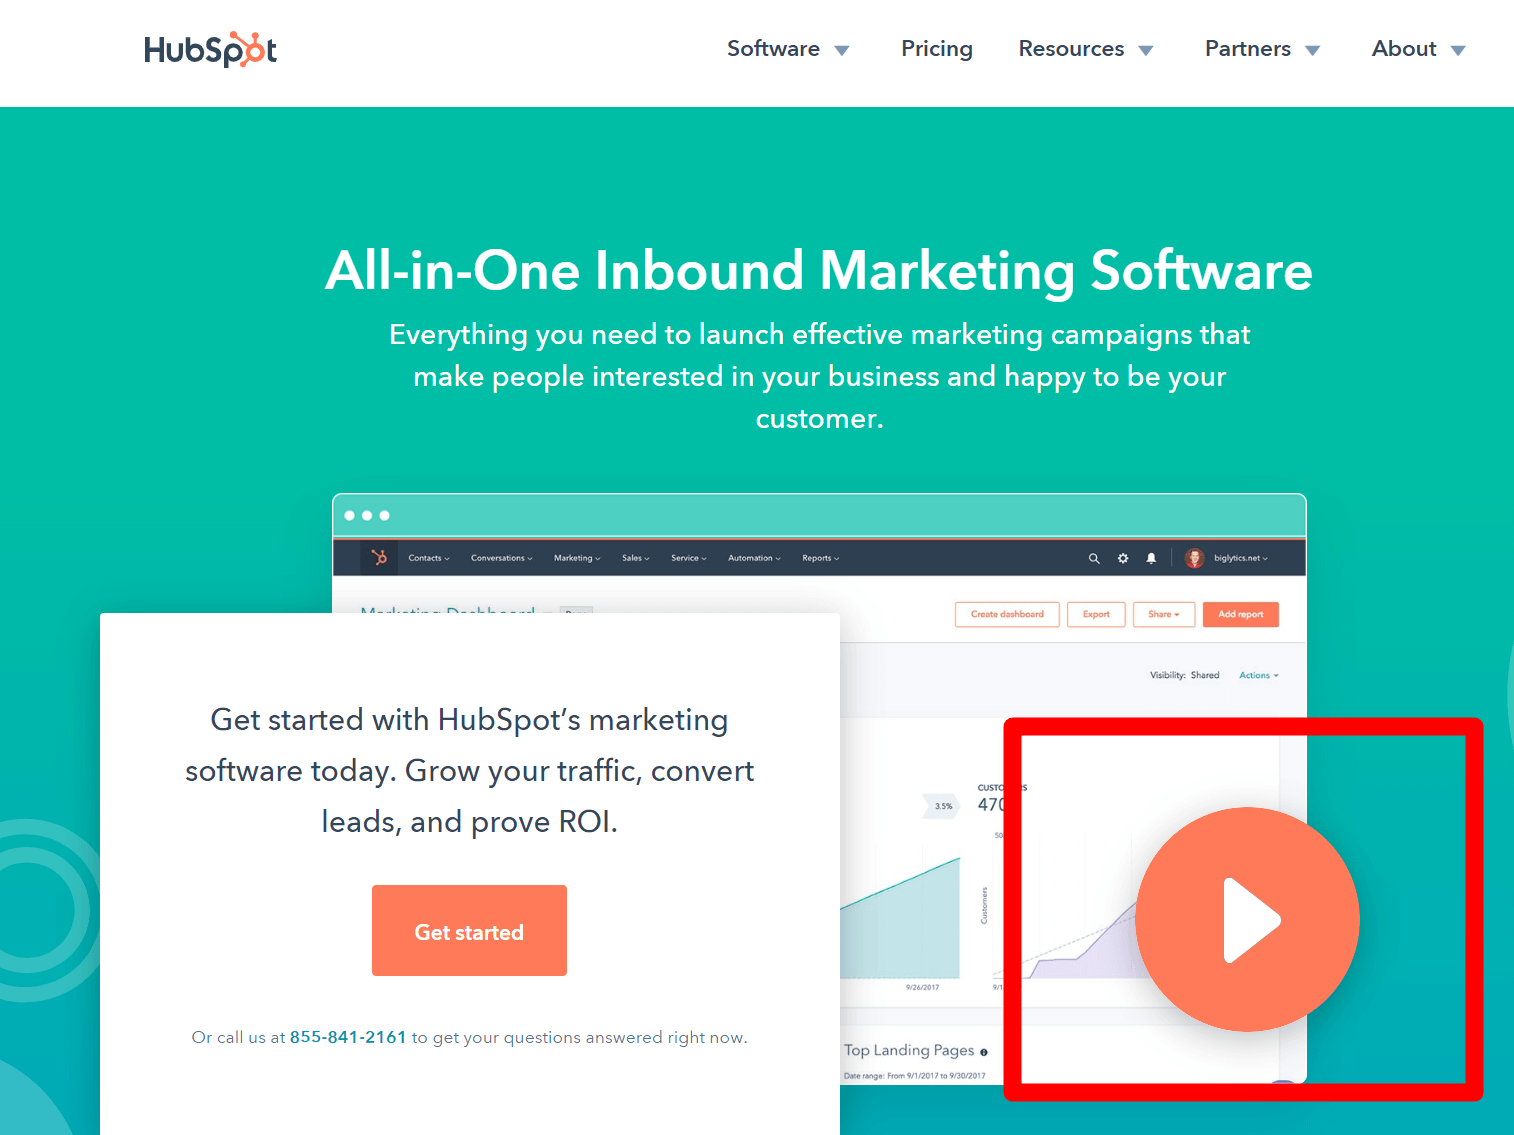 Add videos to landing pages